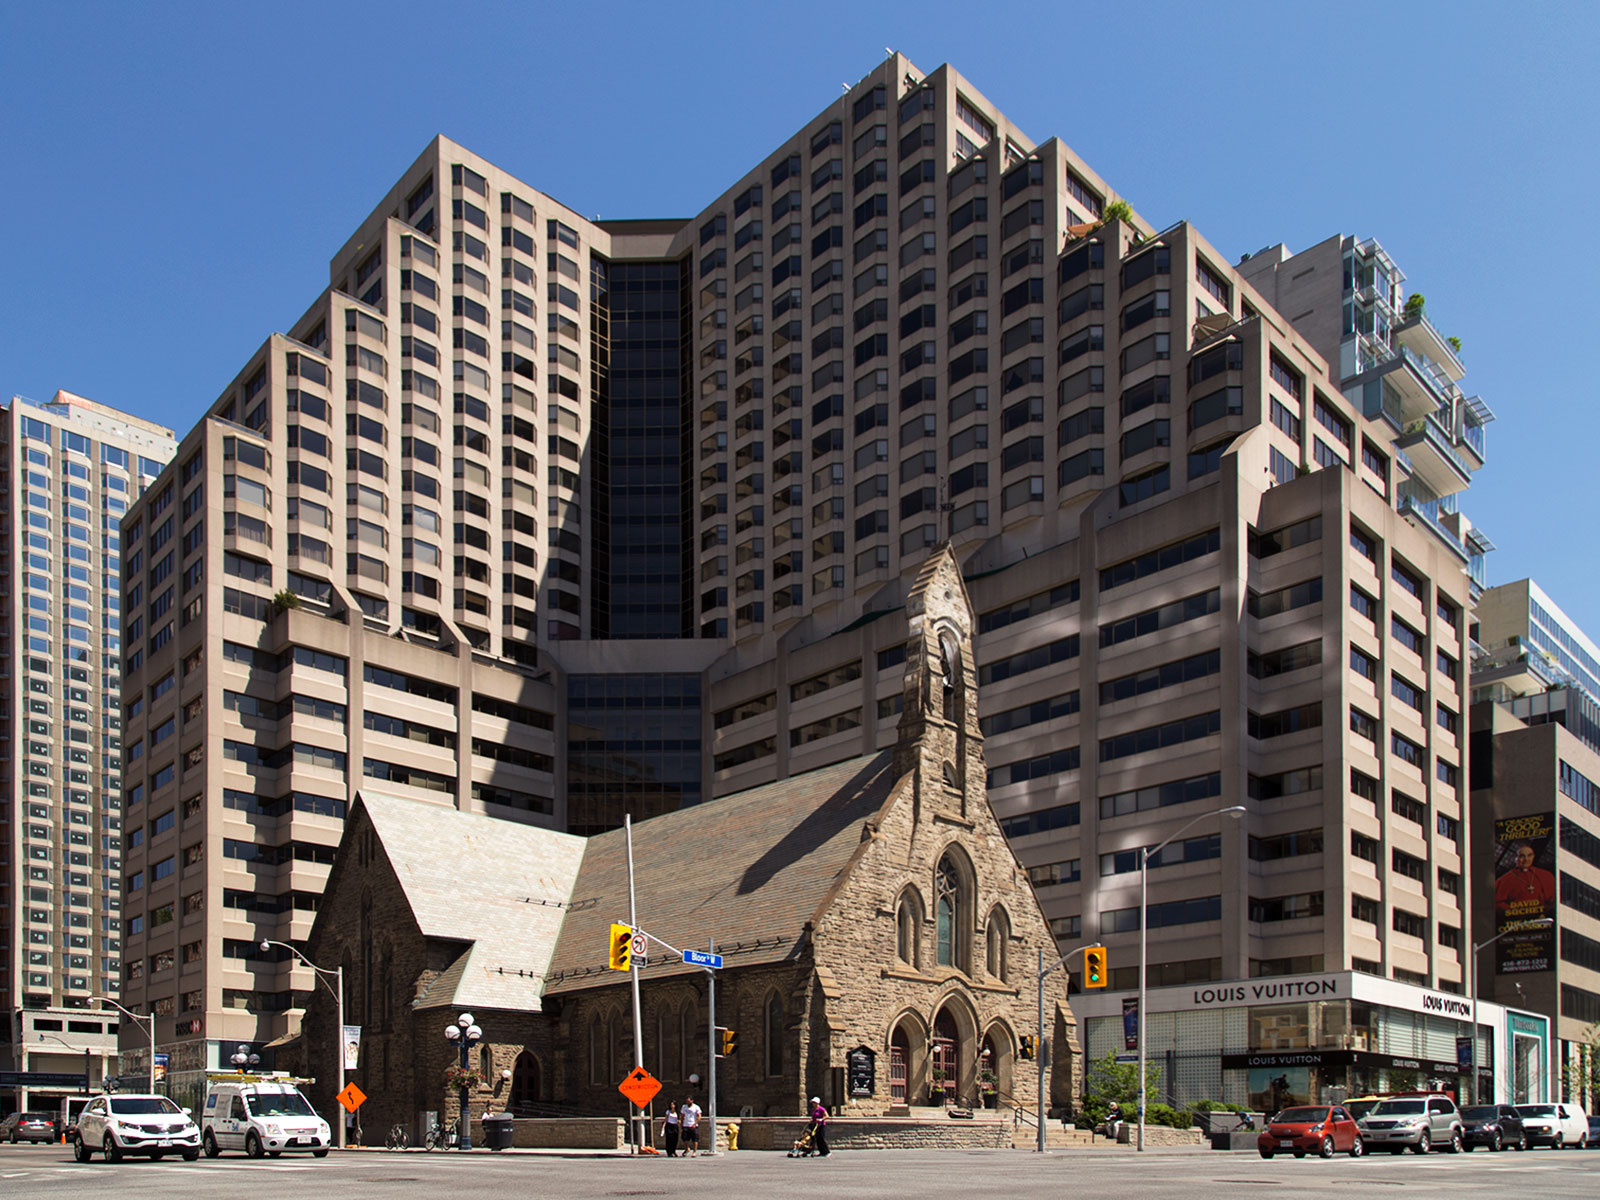 20140608. The Renaissance Plaza towers over the Church of the Redeemer (Avenue Rd and Bloor St, Toronto).